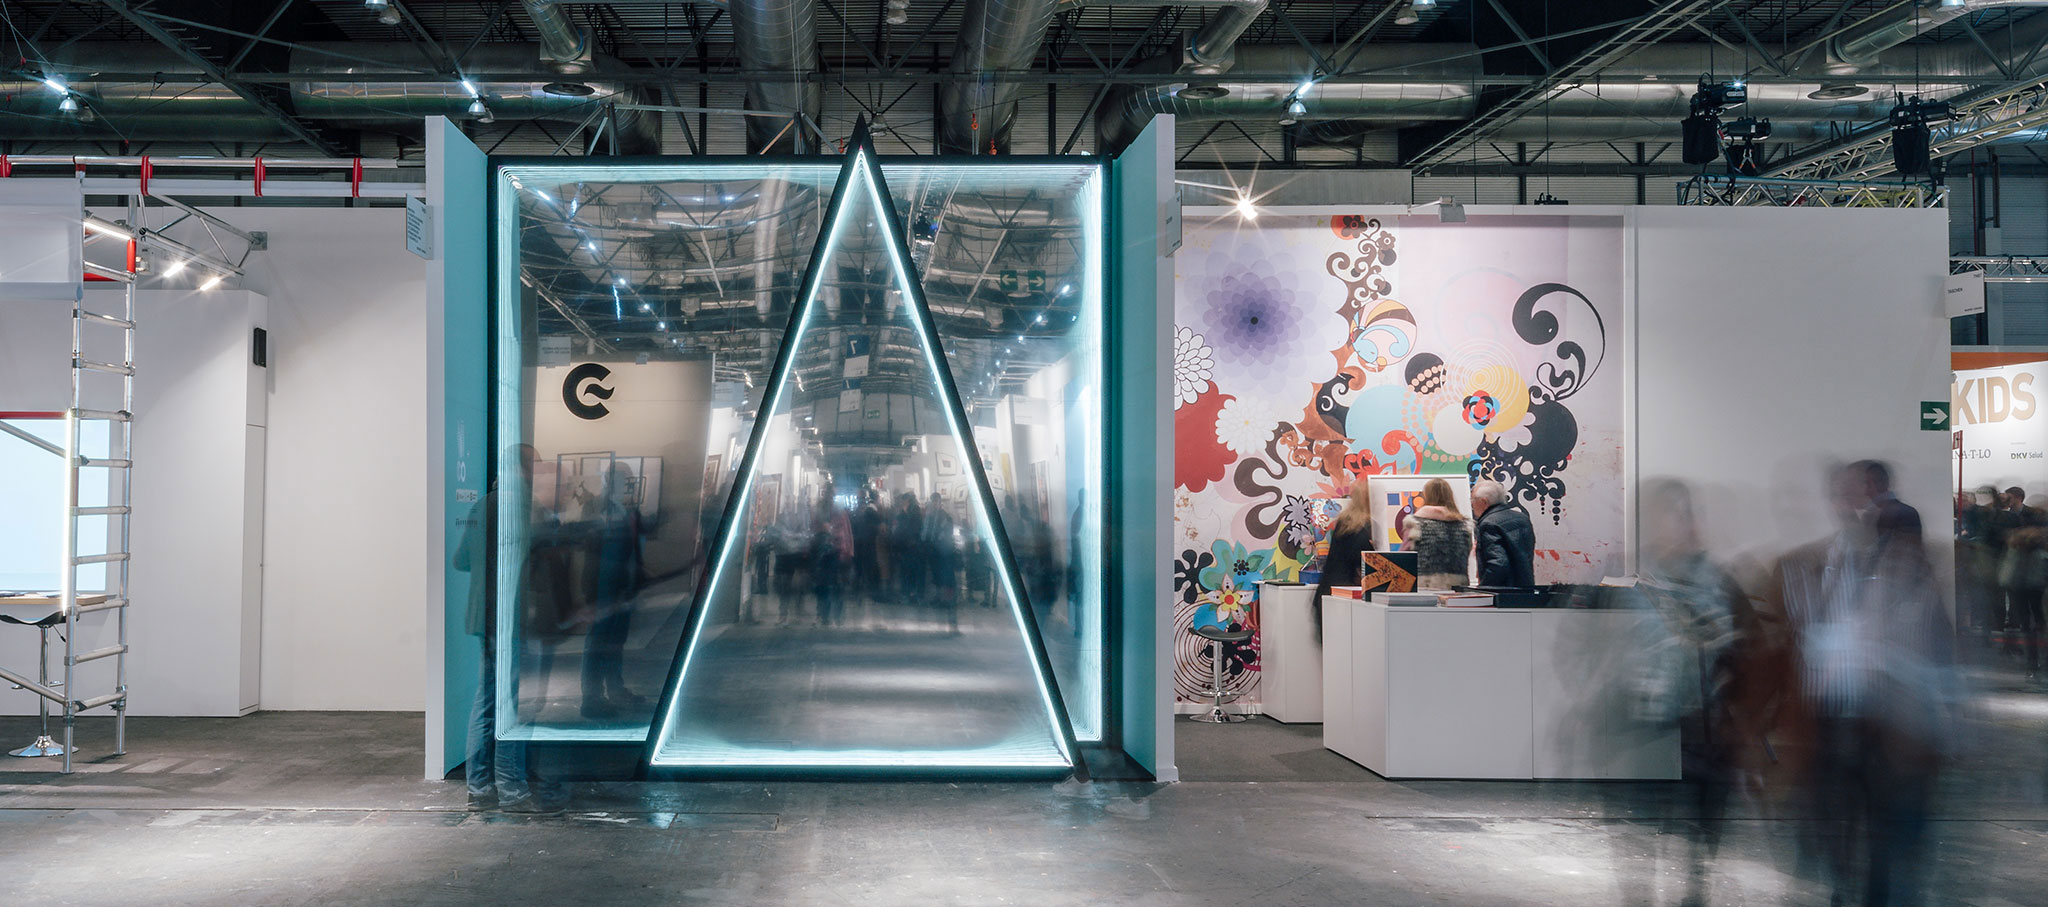 Stand 104 VAV for the AECID in ARCO international fair by elii. Photograph © ImagenSubliminal